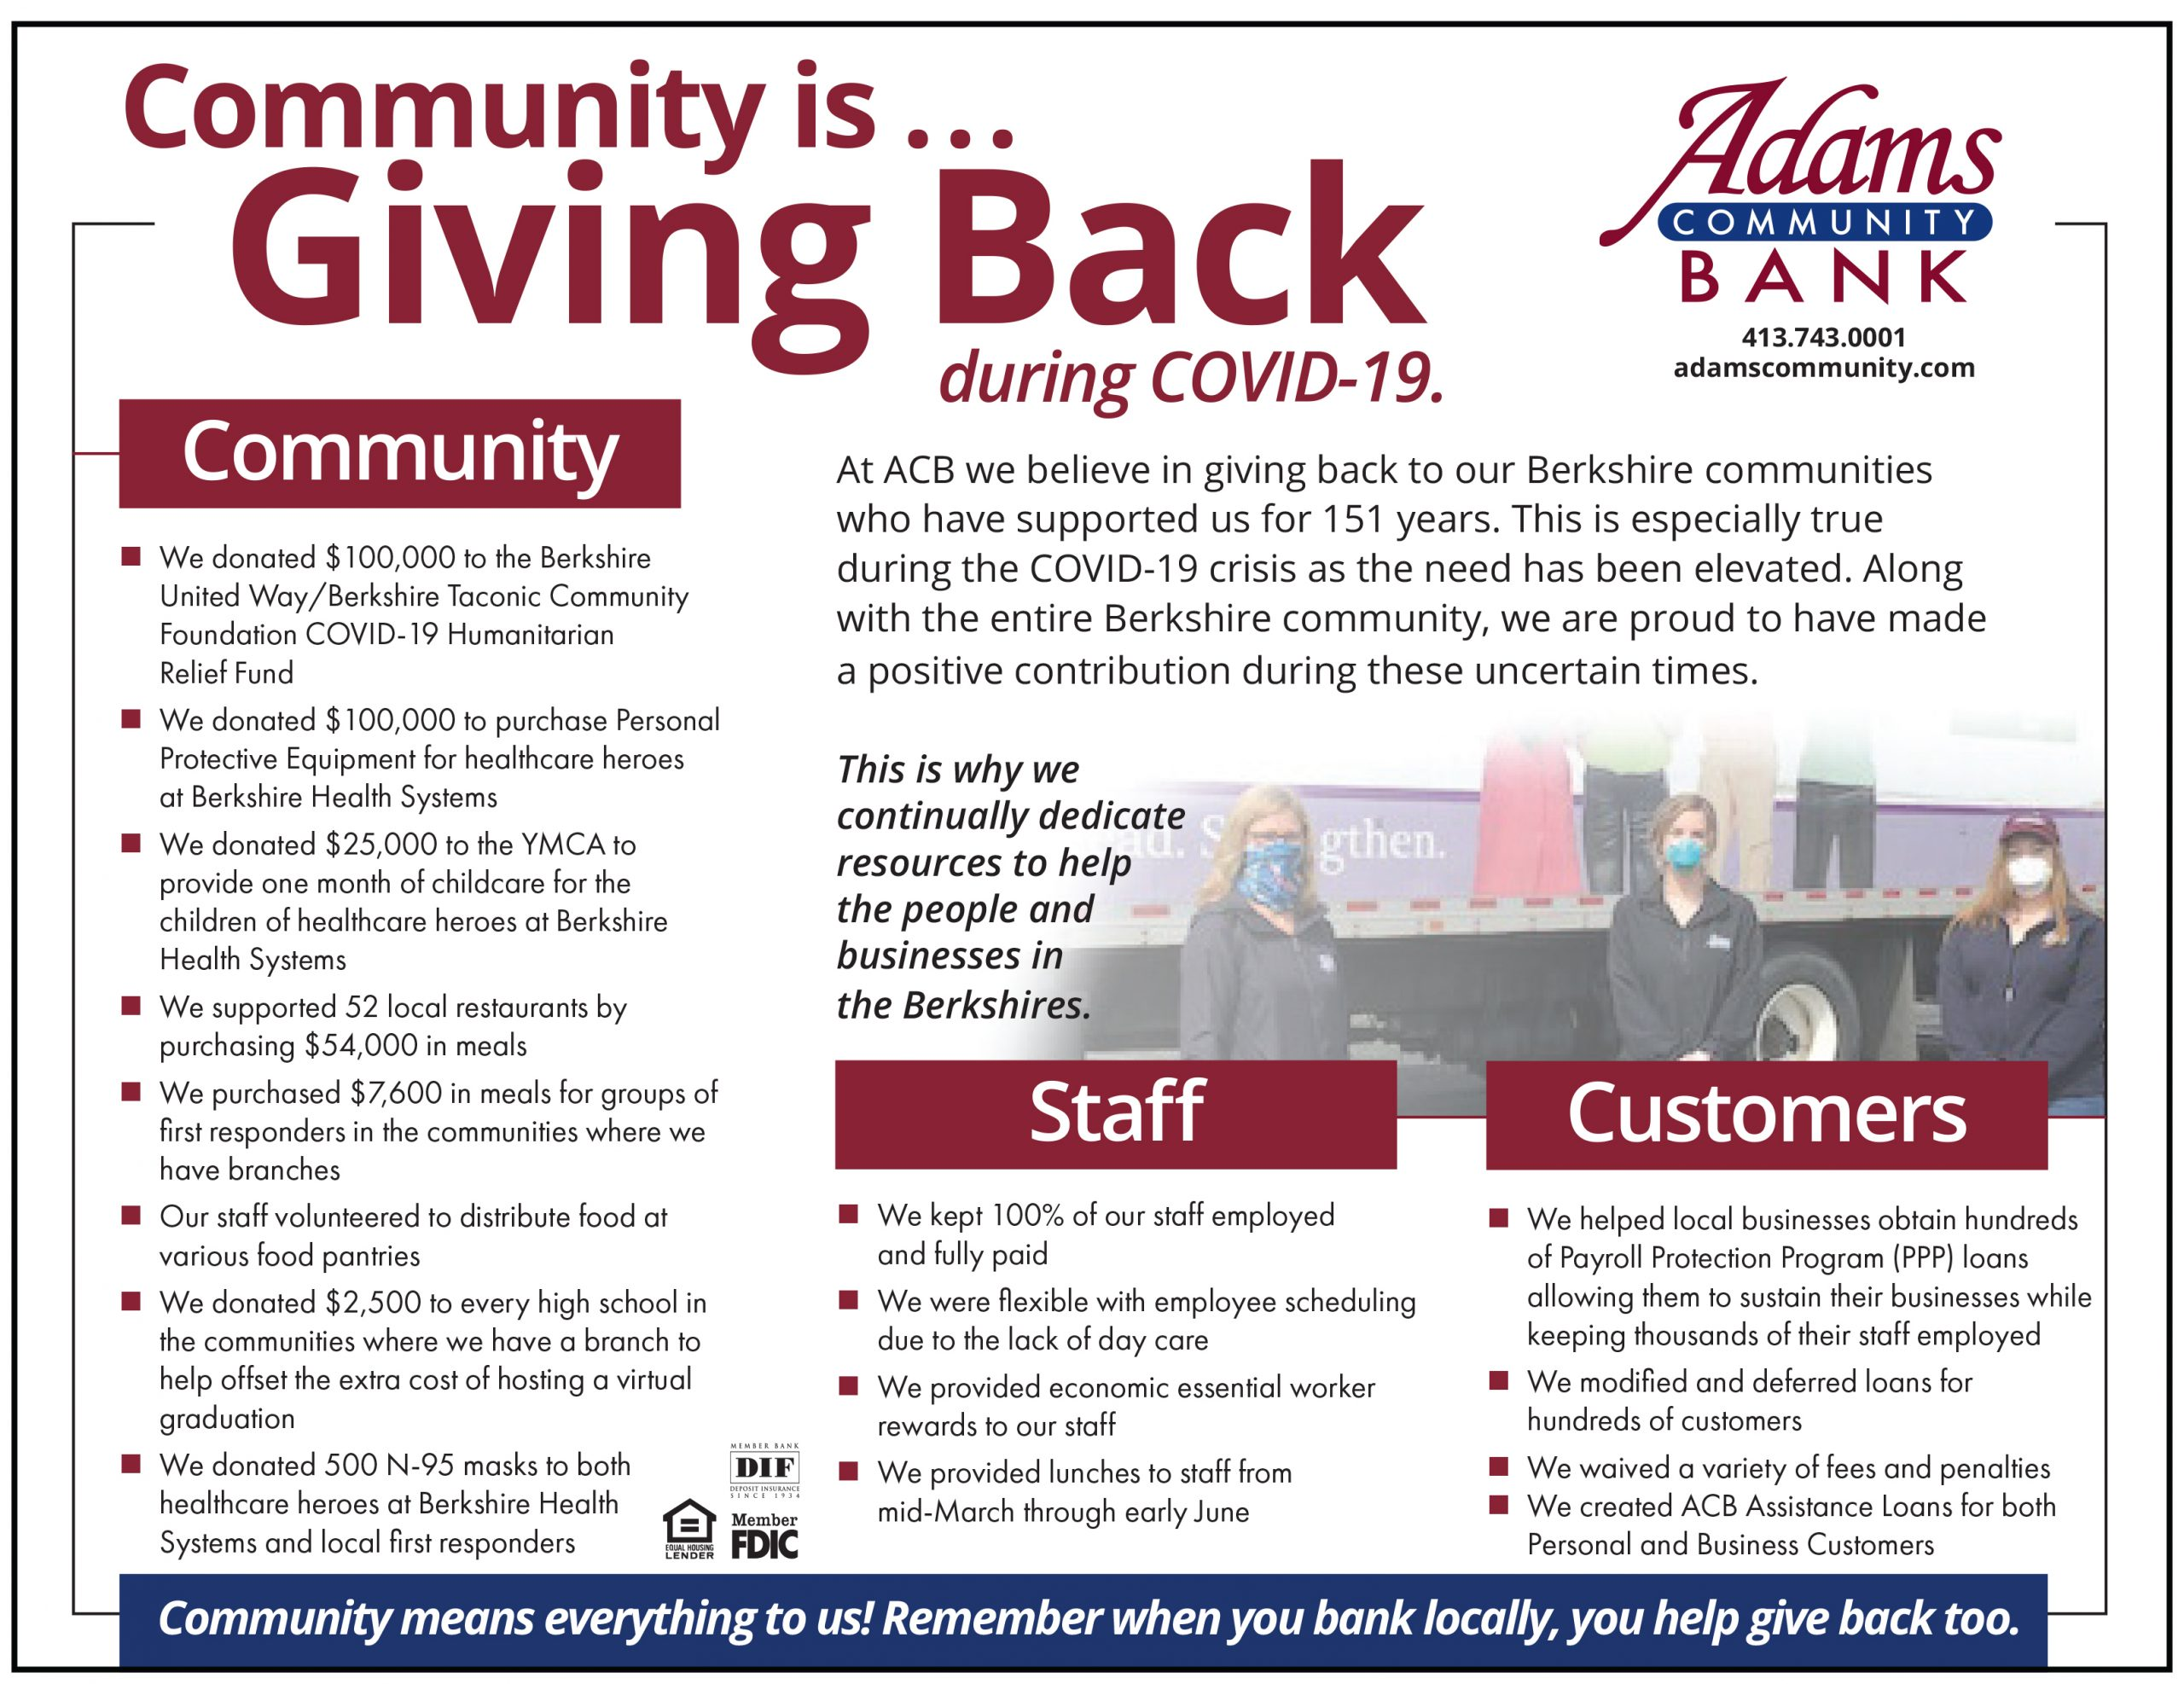 As community needs have risen during the COVID-19 crisis, Adams Community Bank is thankful to be able to show support to our community, customers, and staff.